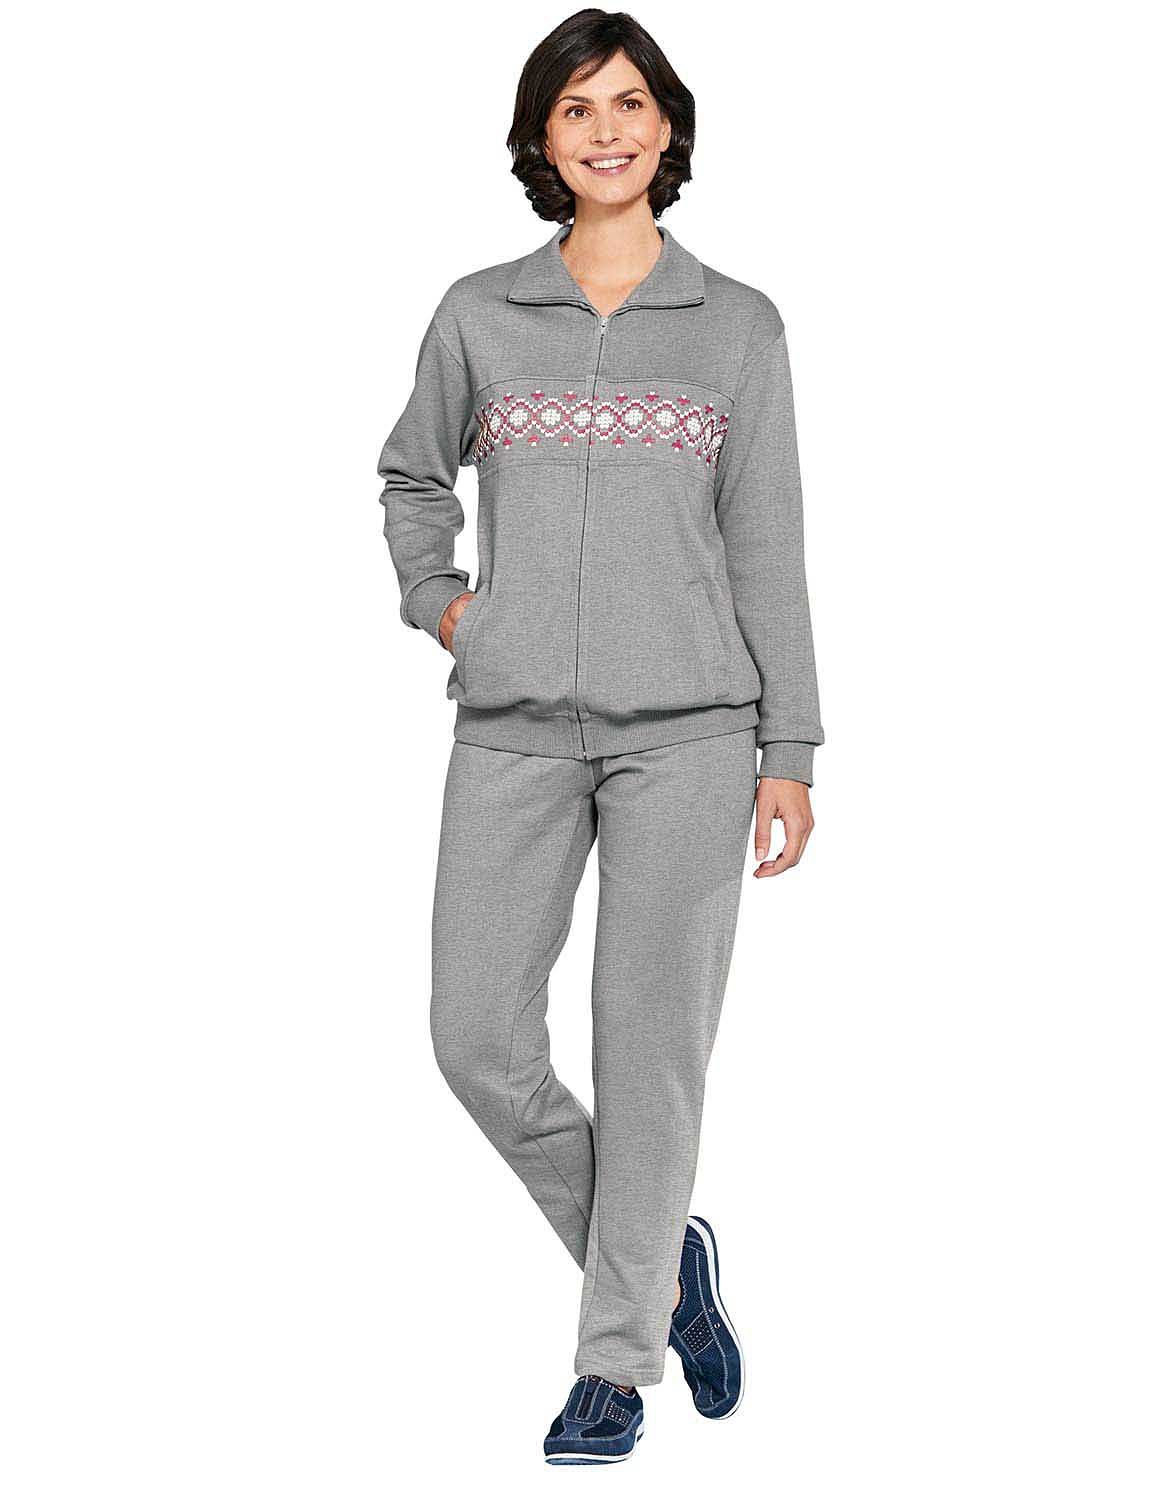 This leisure suit womens outfit comes in two neck styles, a scoop neck and a V-neck design. The asymmetrical hem line gives it added style and it's a great for covering your tummy and your hips. Women over 40, women over 50 and beyond are loving these leisure suits for sale and you will too.